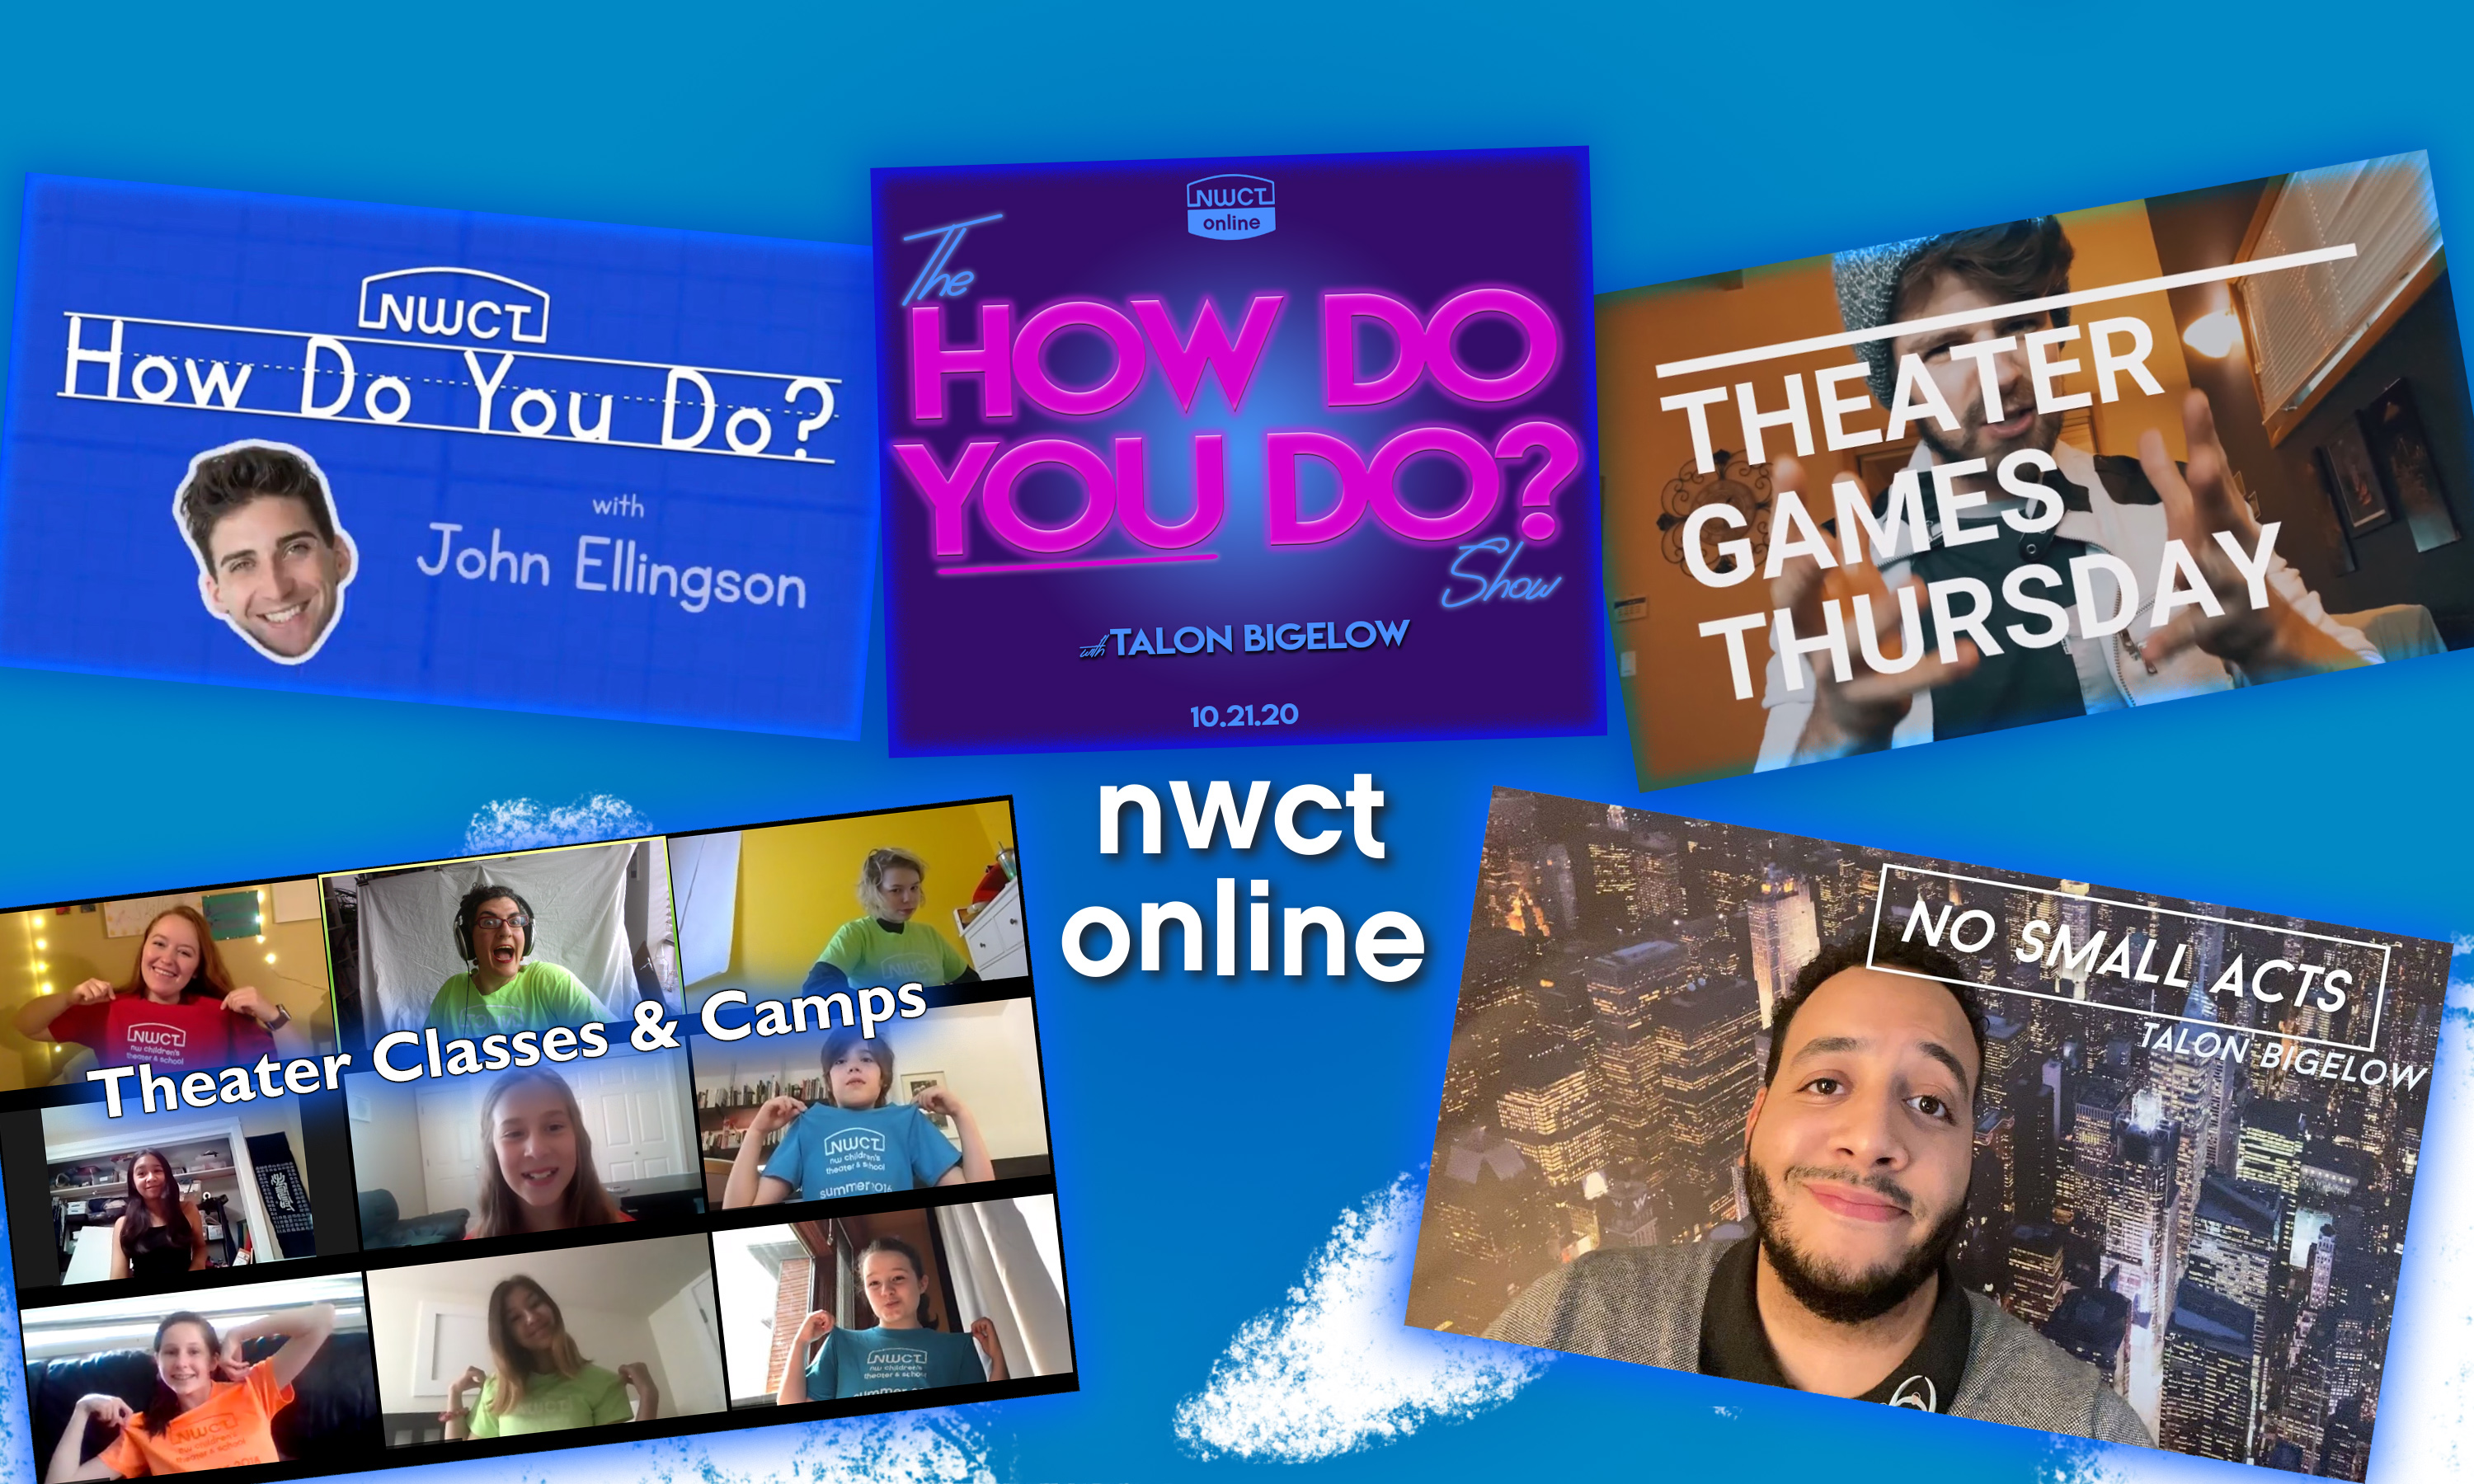 NWCT Online: How Do You Do, Theater Game Thursday, Online Classes & No Small Acts